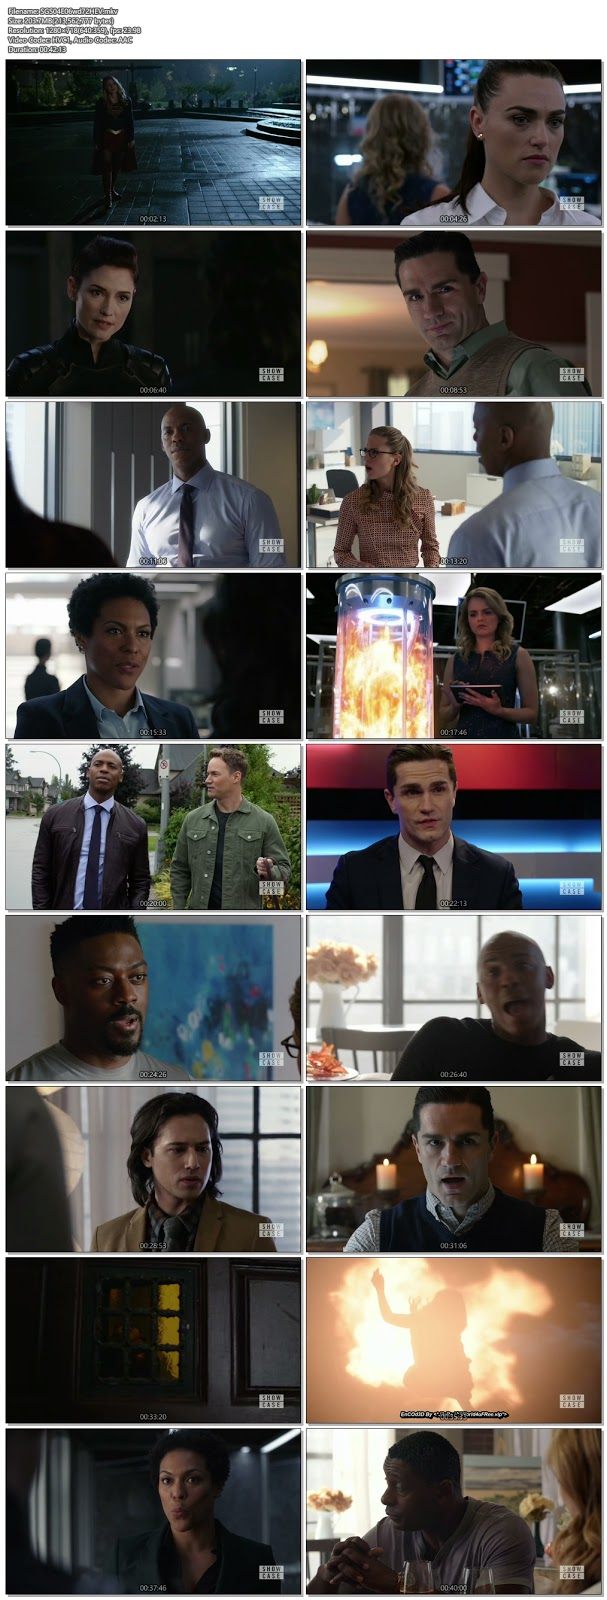 Supergirl S04 Episode 06 720p HDTV 200MB ESub x265 HEVC , hollwood tv series Supergirl S01 Episode 06 720p hdtv tv show hevc x265 hdrip 250mb 270mb free download or watch online at world4ufree.vip